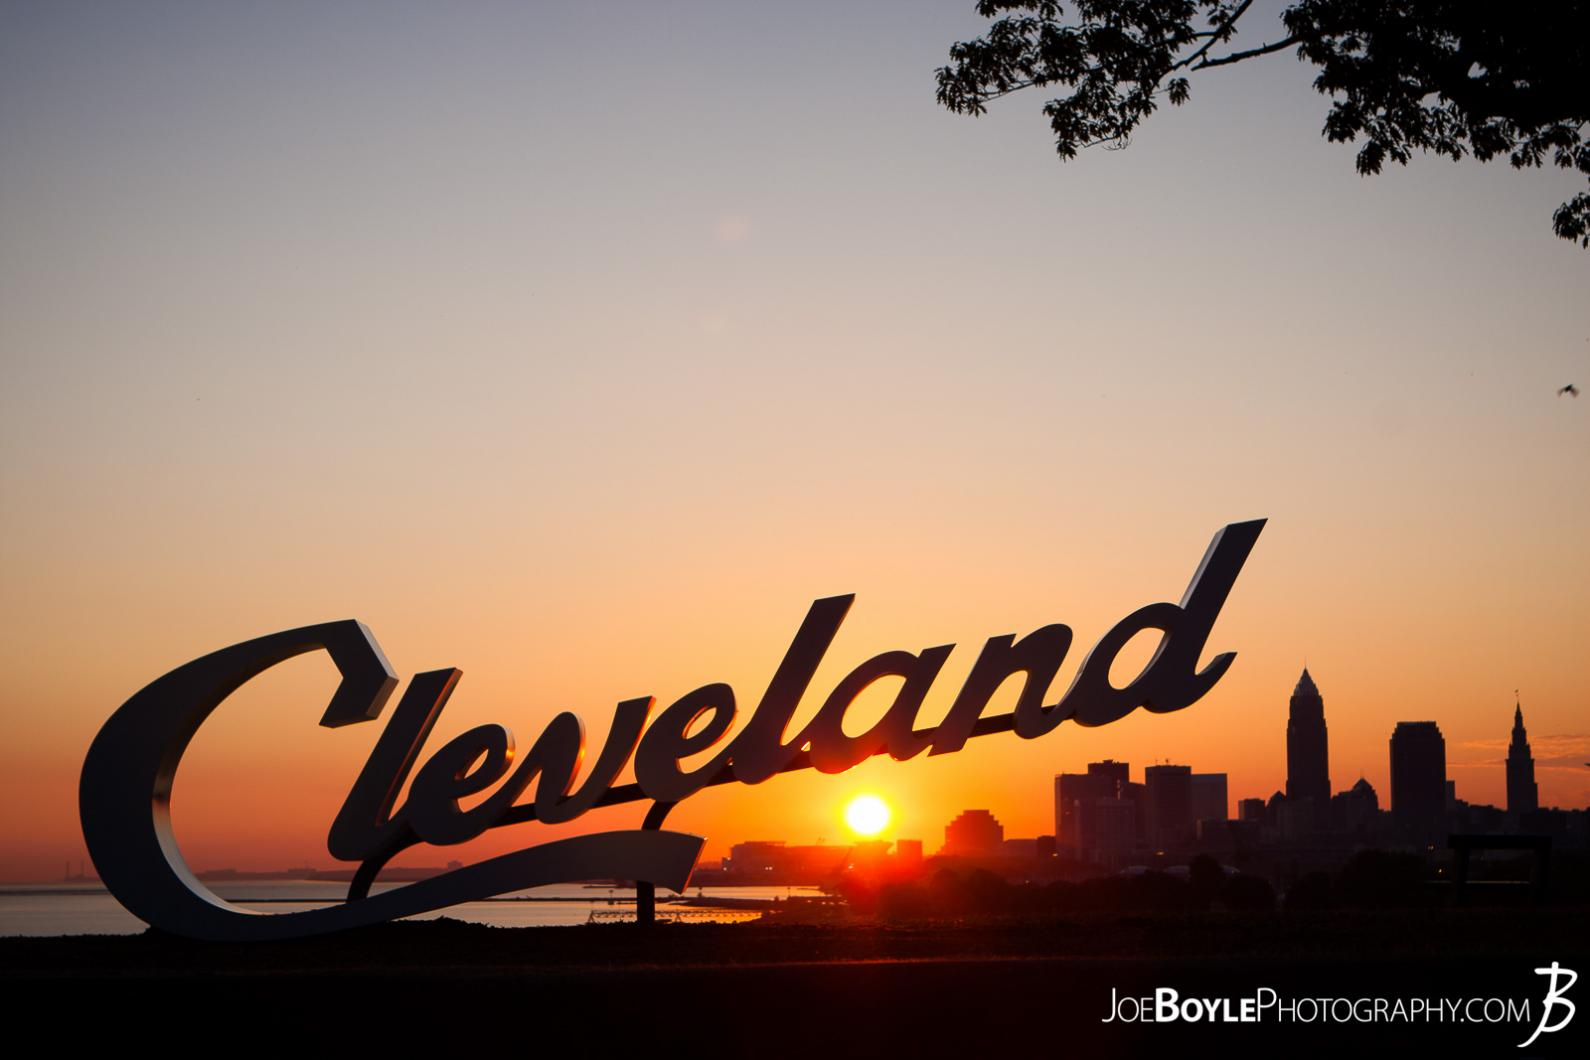 cleveland-sign-during-sunrise-at-edgewater-park-city-beneath-the-sign-iii